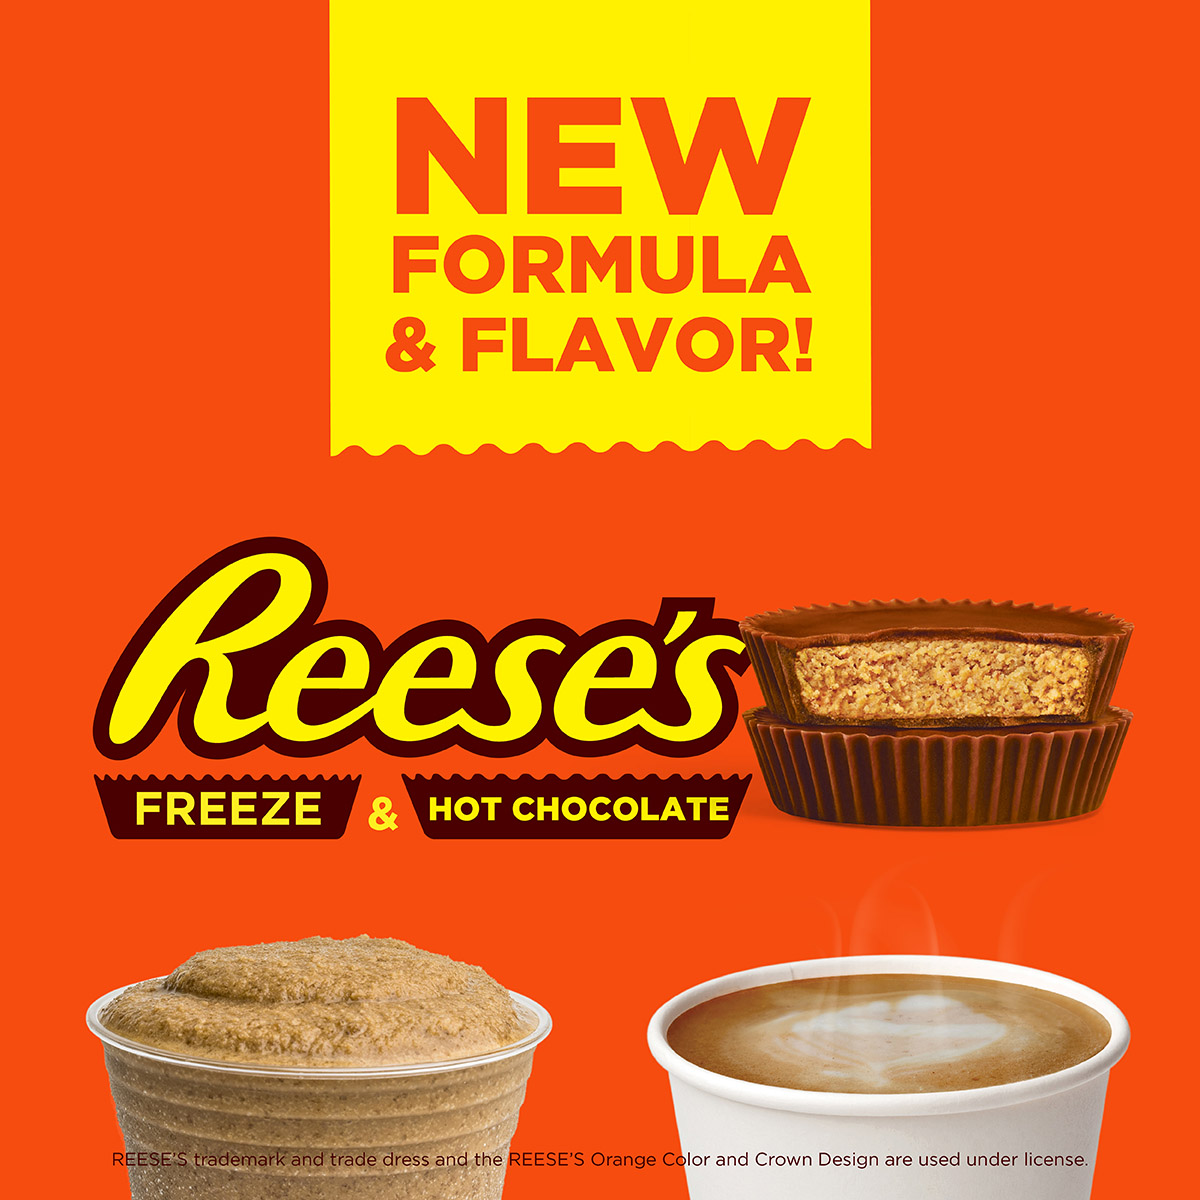 REESE'S Freeze & REESE'S Hot Chocolate - New Formula & Flavor